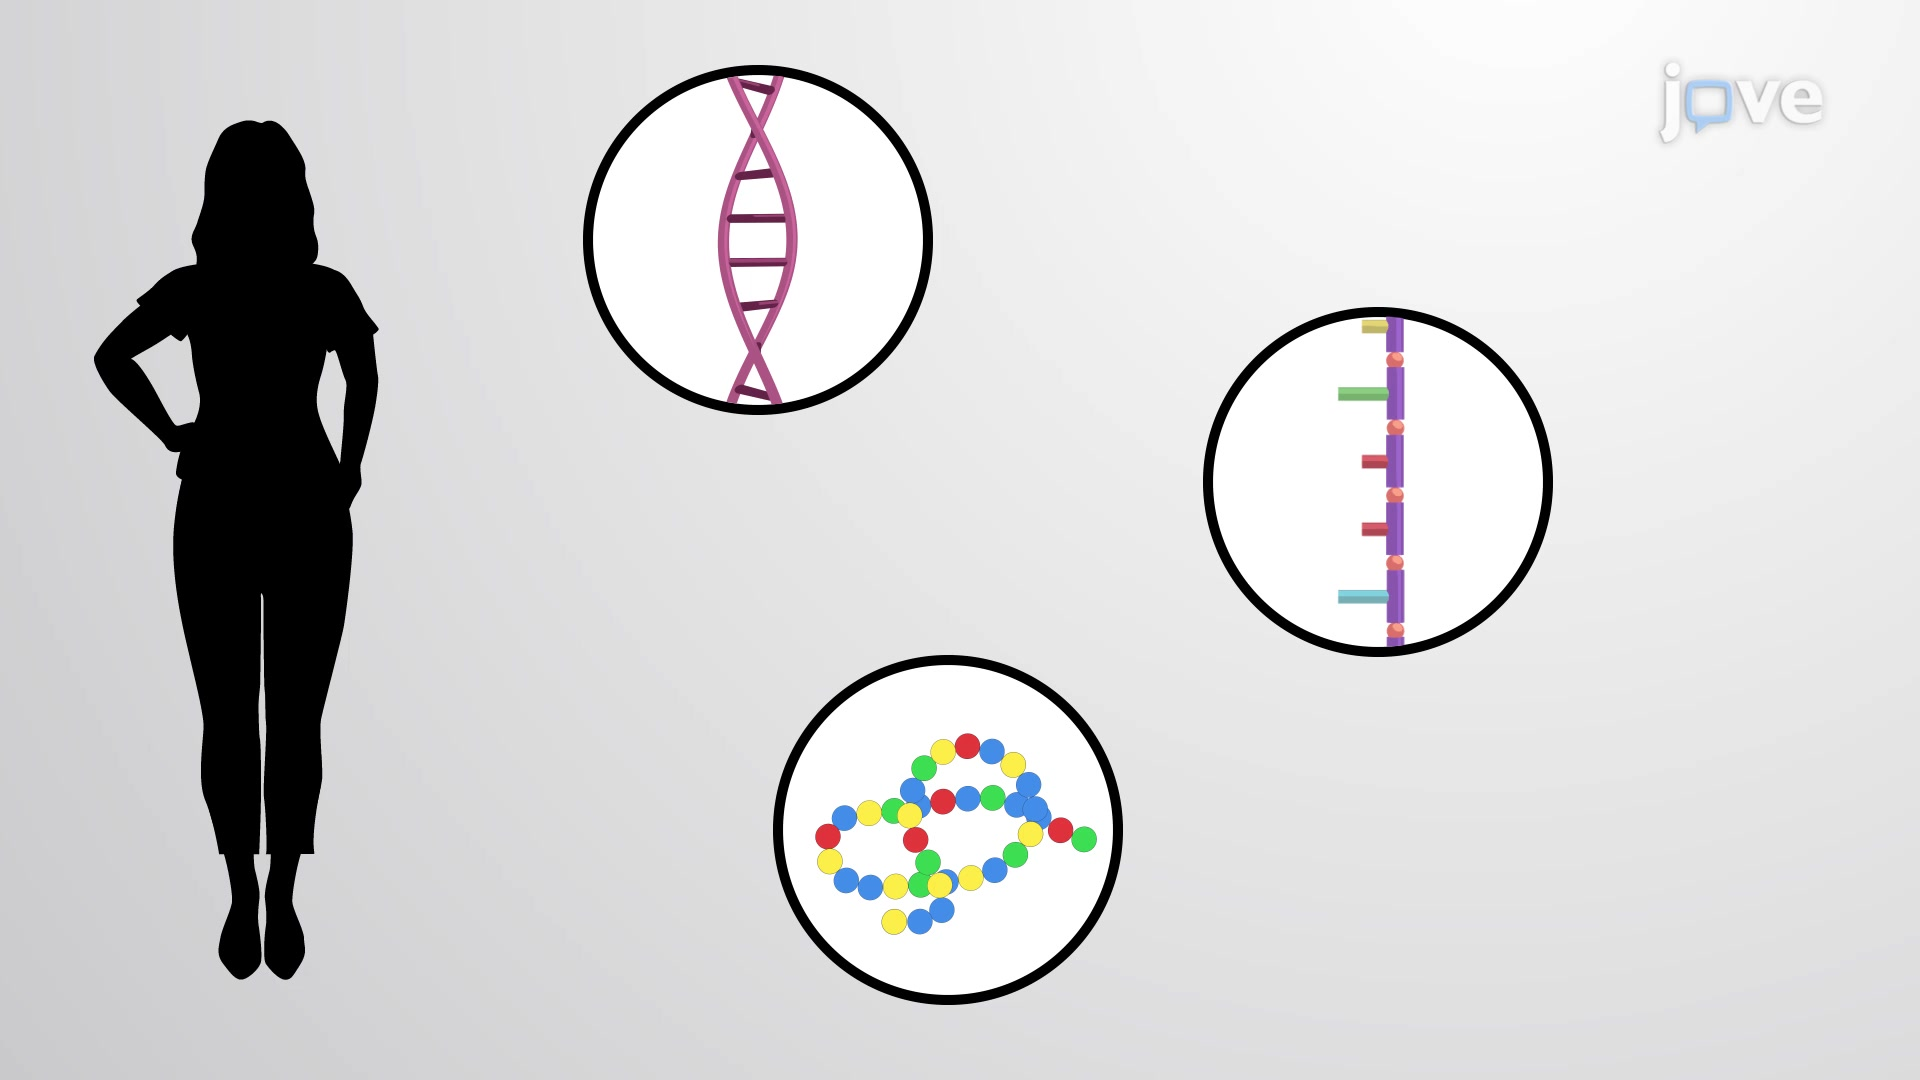 DNA as a Genetic Template